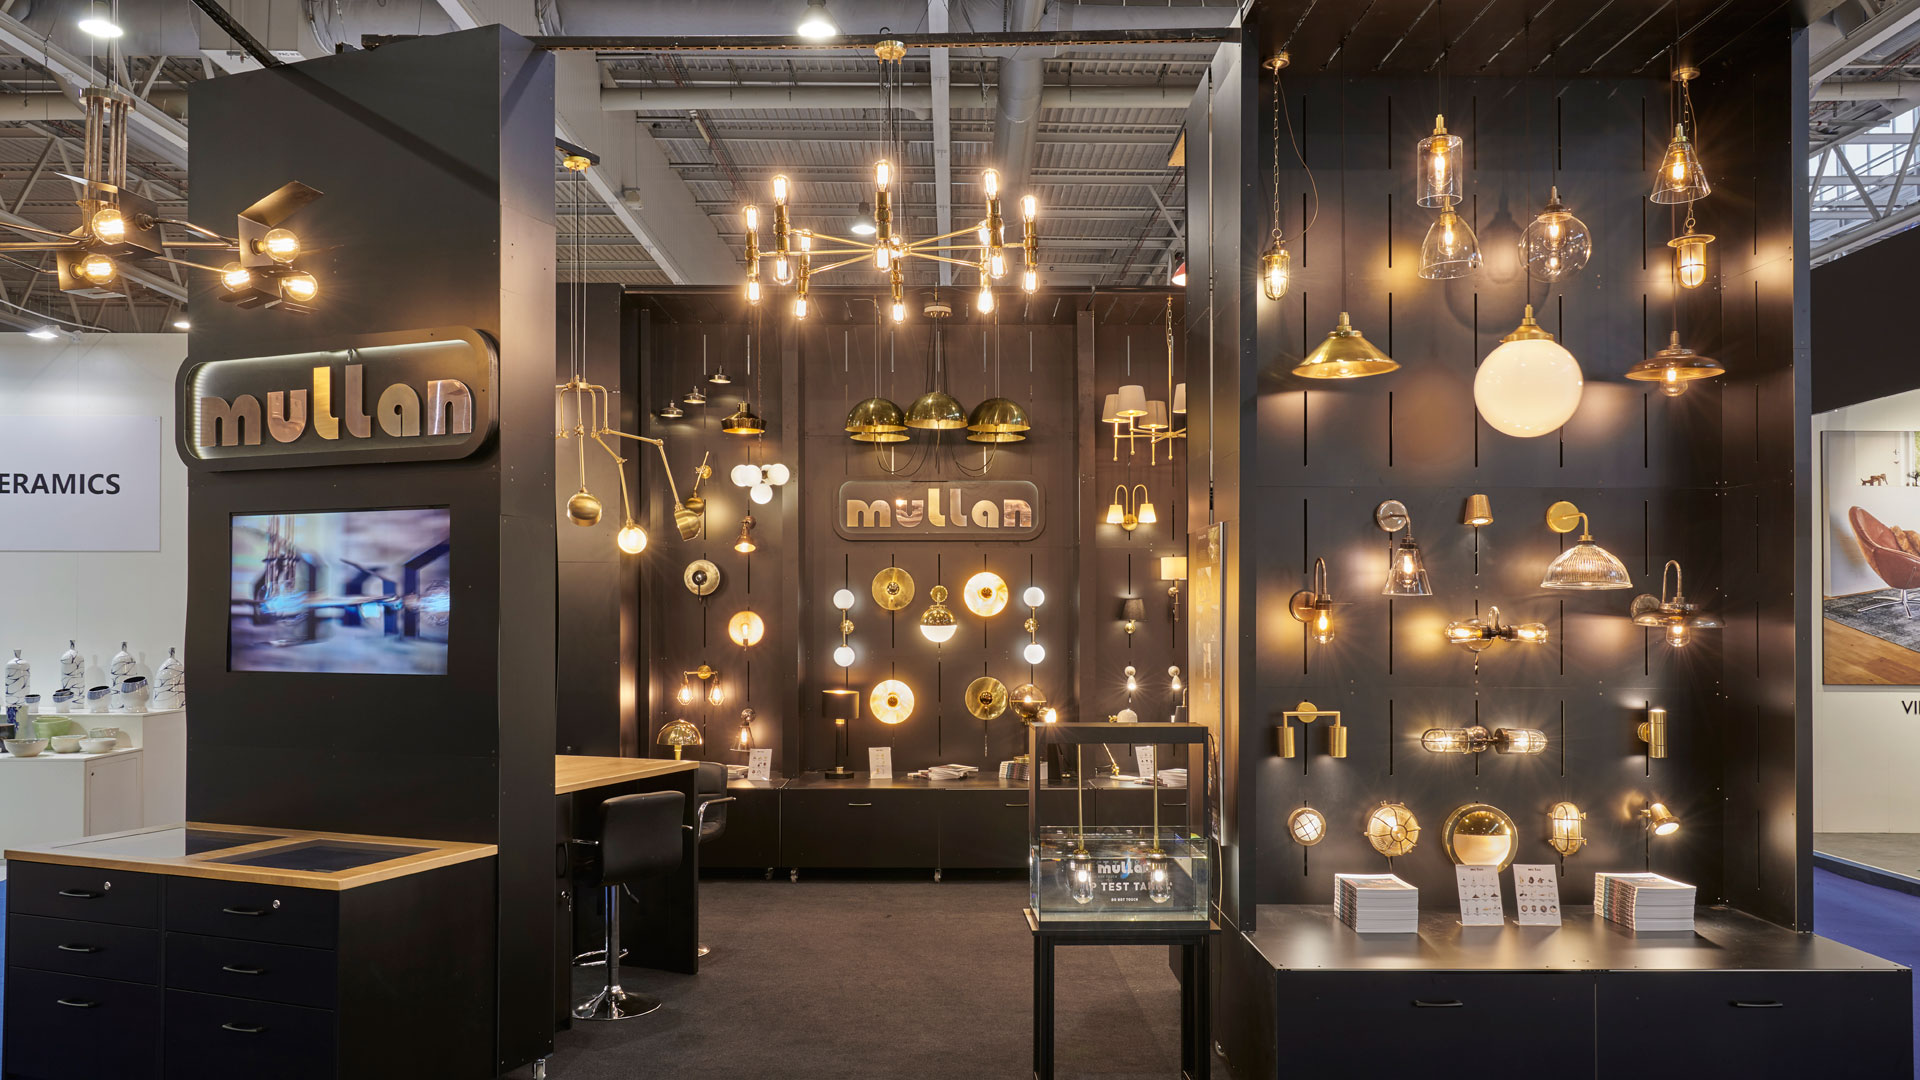 We're kicking off our 2019 trade show schedule at IMM Cologne